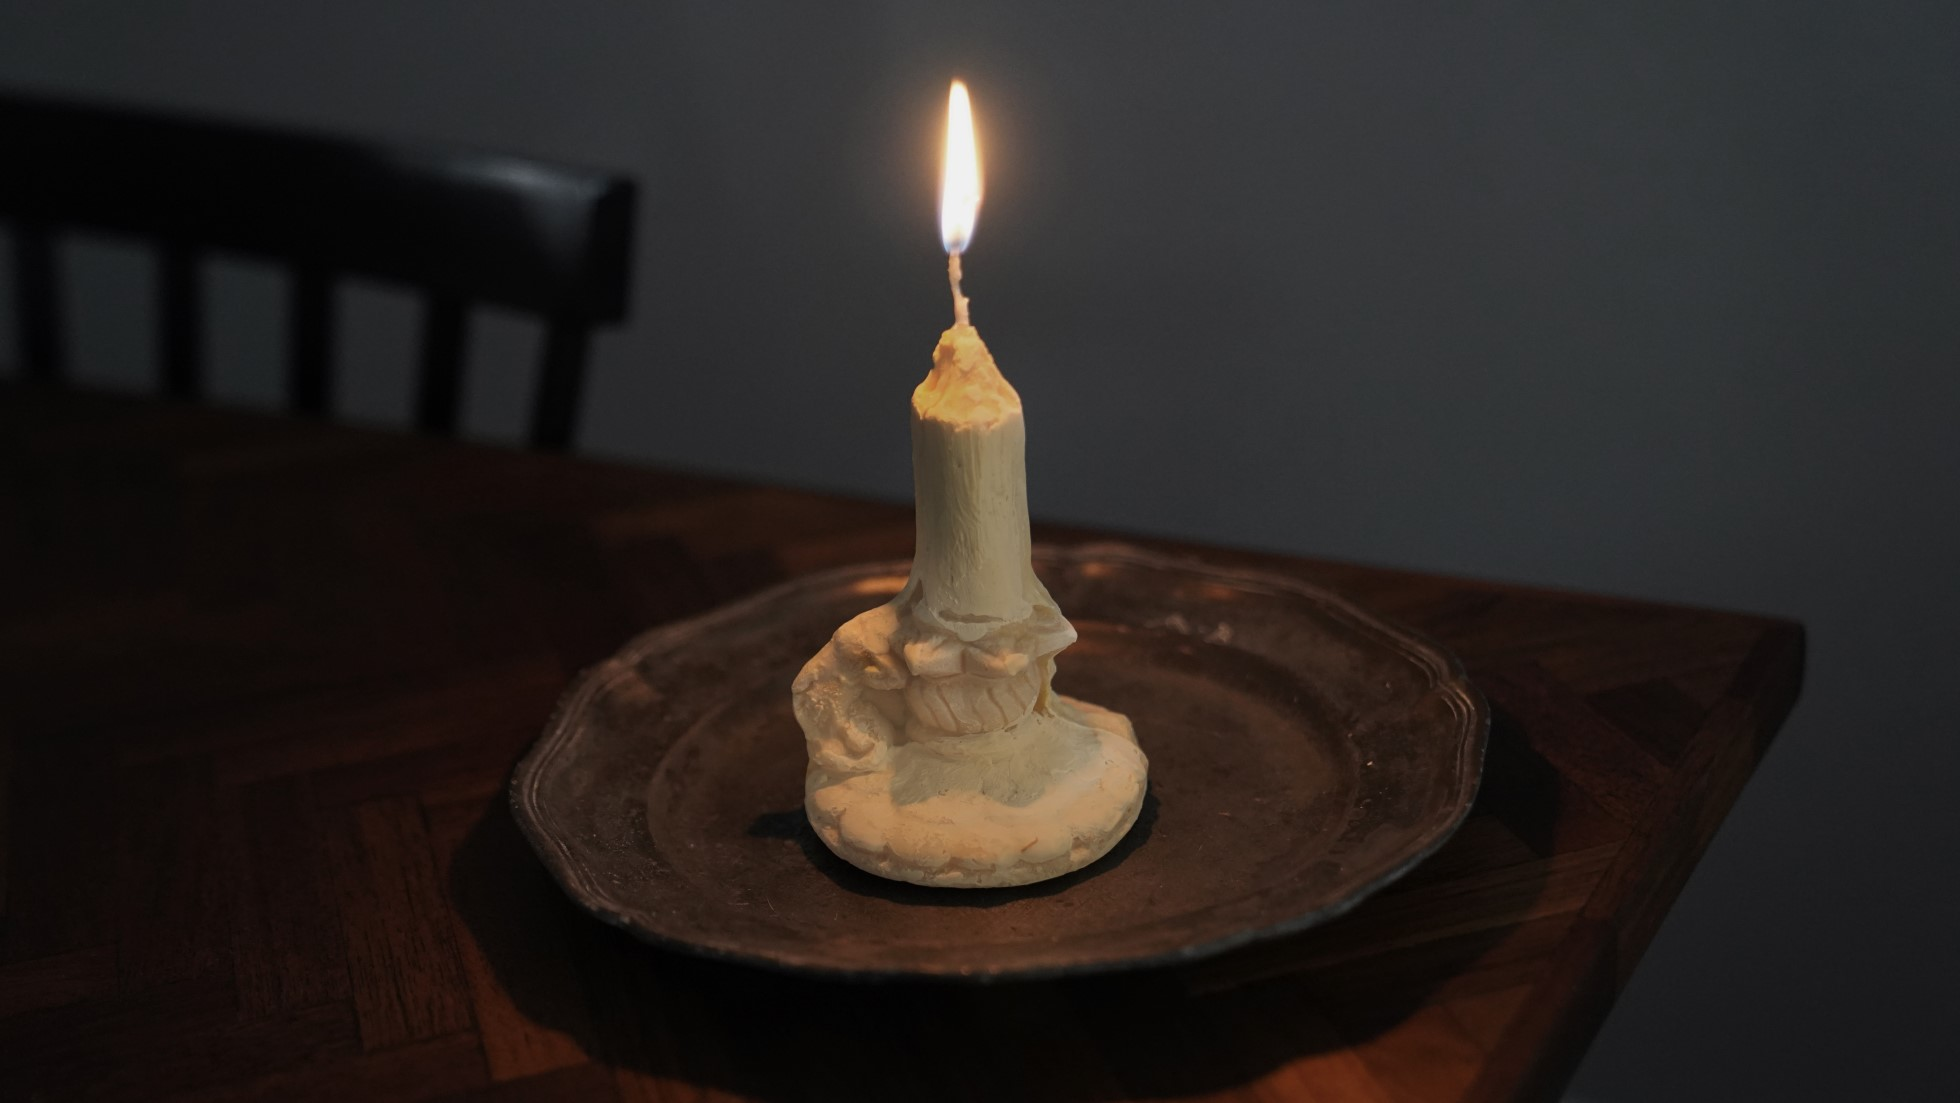 A photograph of an ice cream 'candle' made using the mould above. The wick is alight.